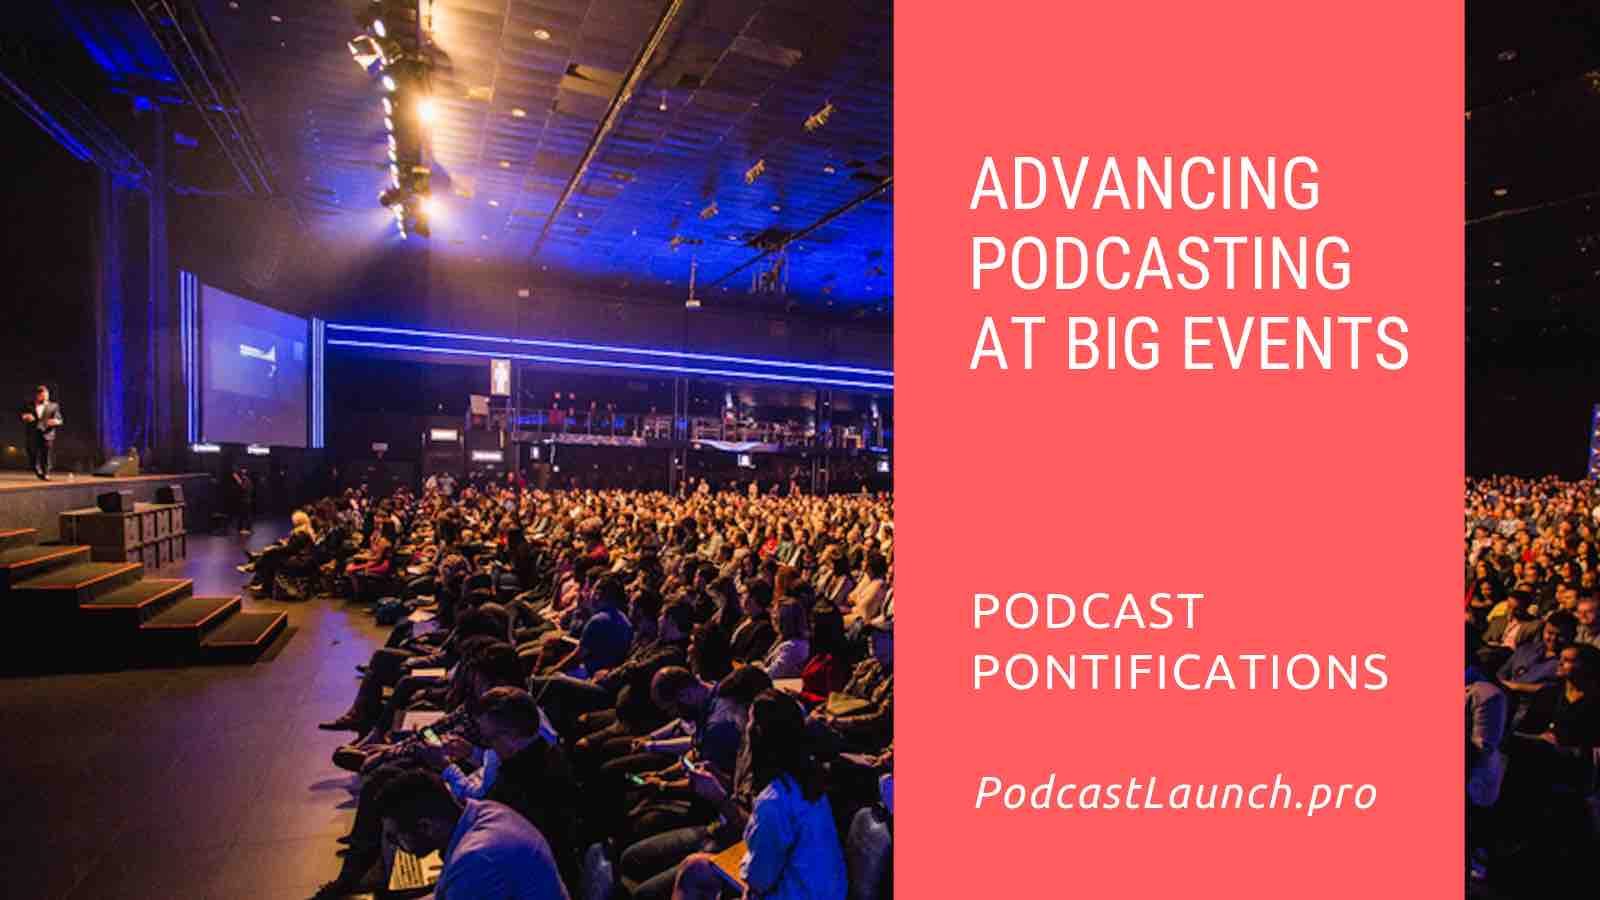 Advancing Podcasting At Big Events - On Stage Or In The Audience